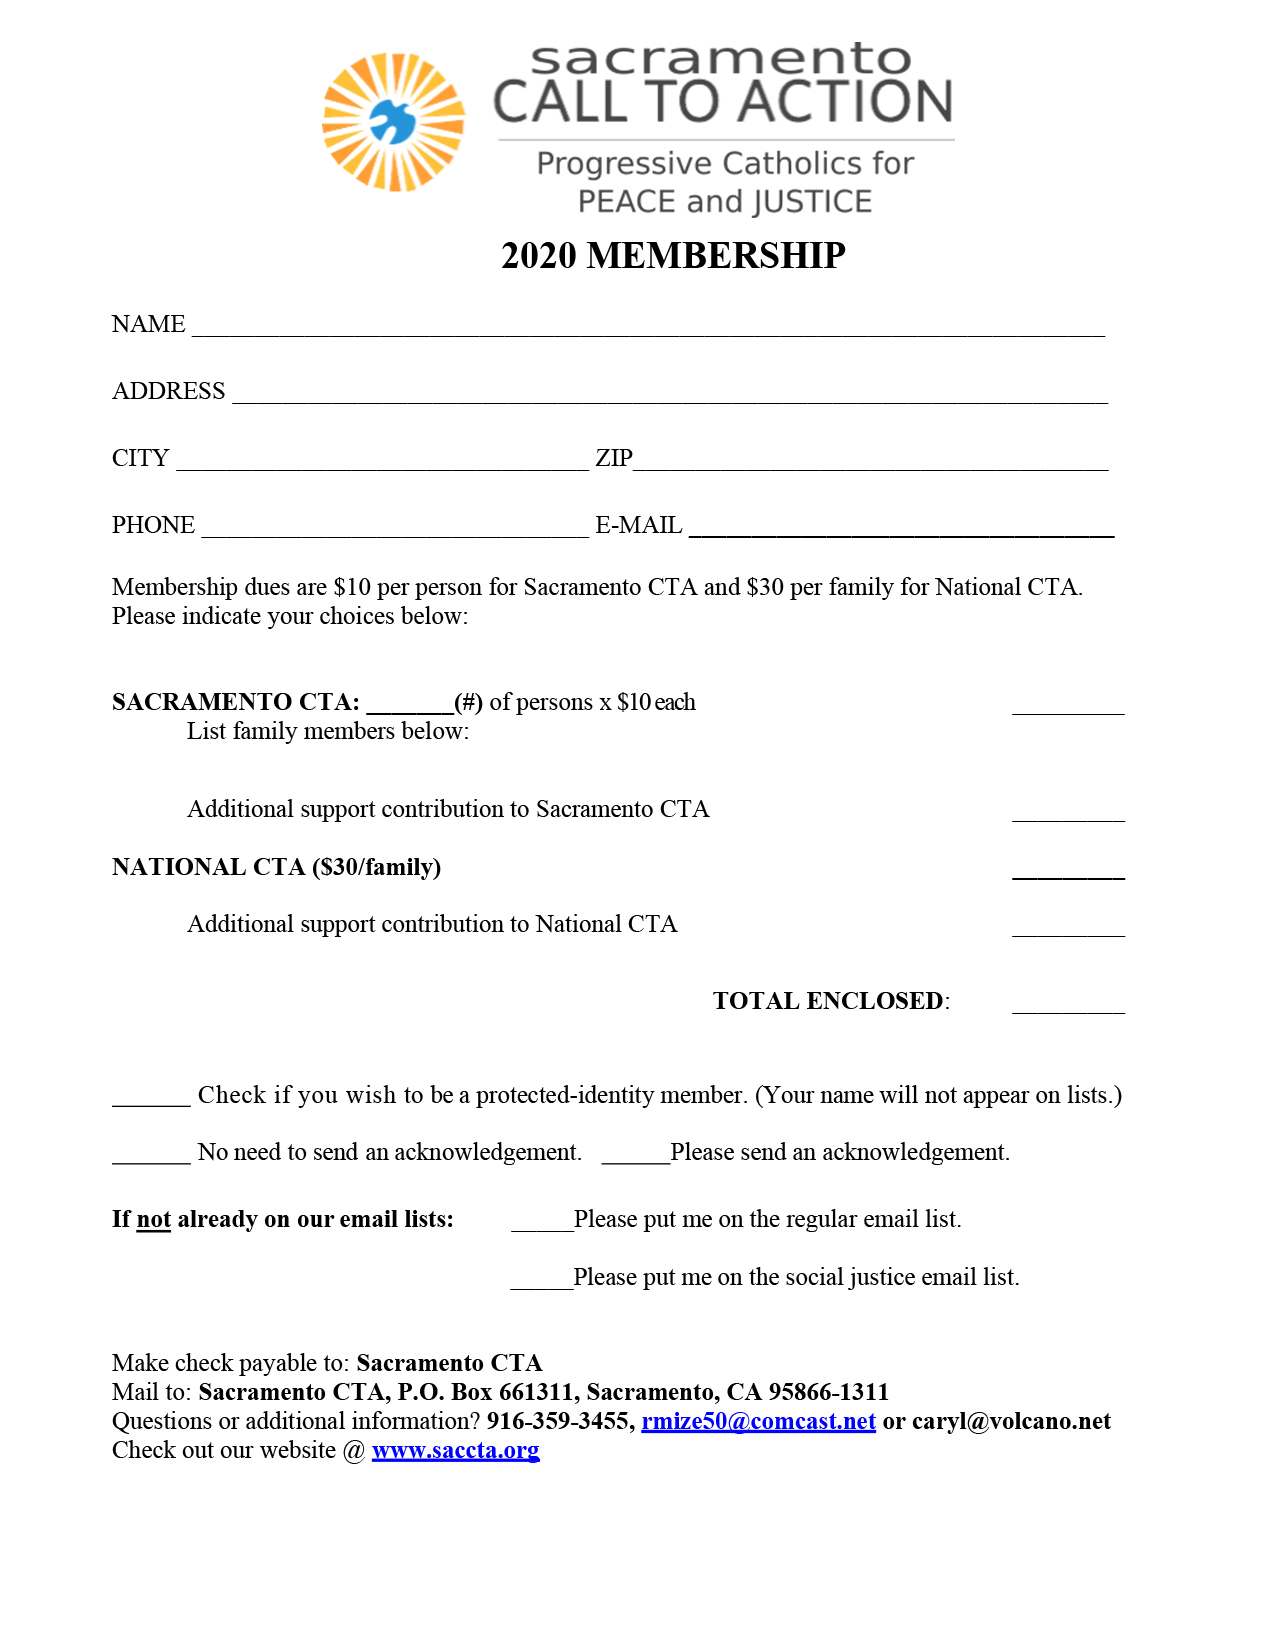 2020 membership form - pdf version - opens in new tab